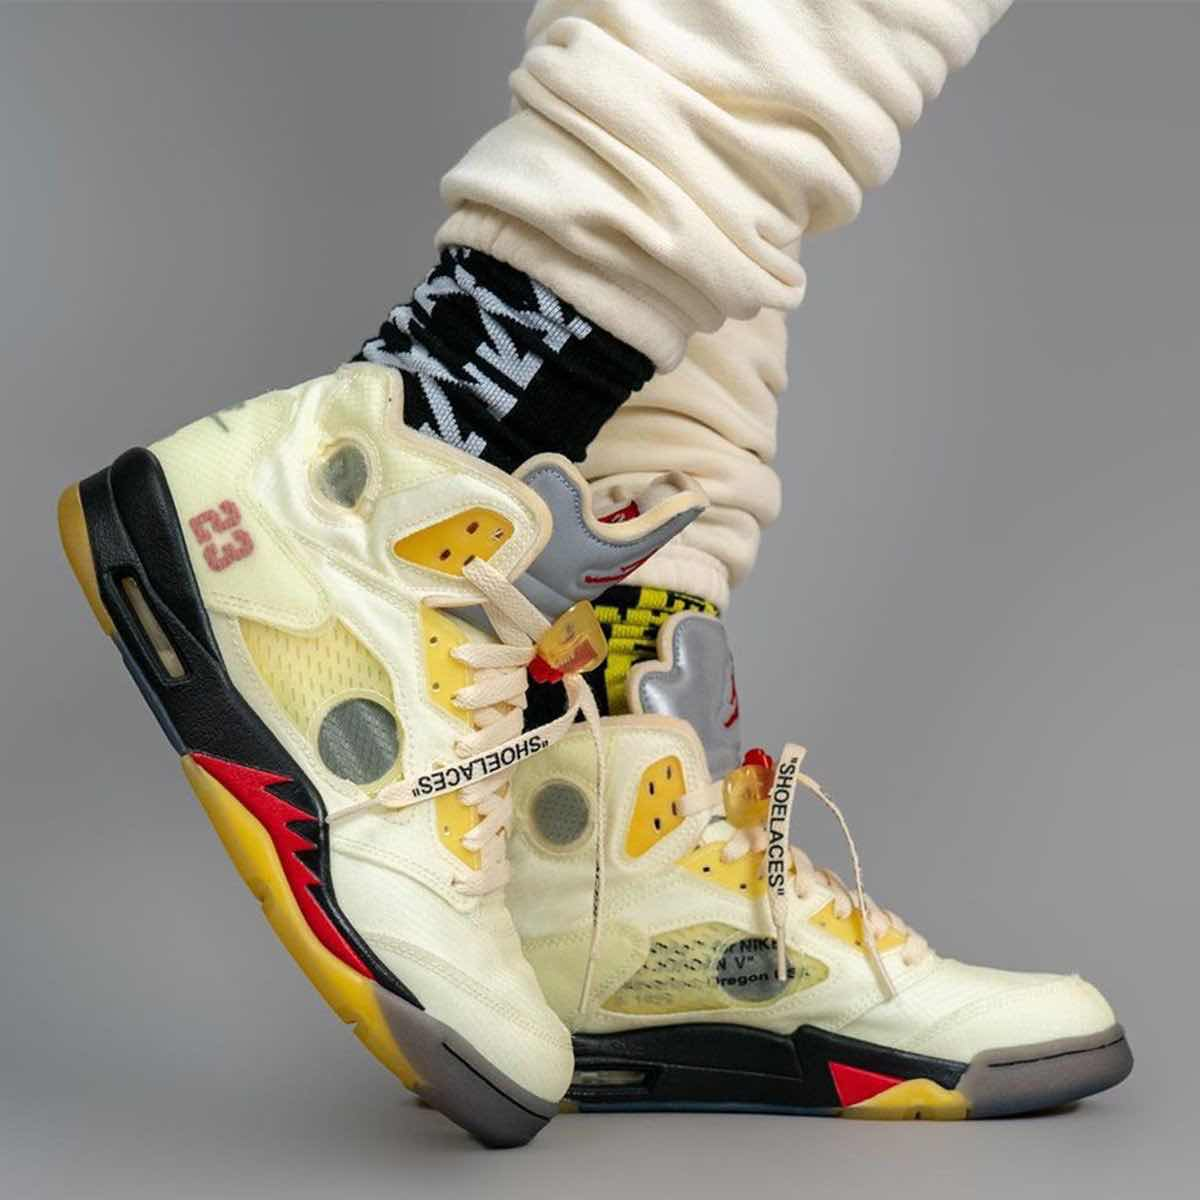 Latest Obsession: OFF-WHITE X AIR JORDAN 5 RETRO SP 'FIRE RED'